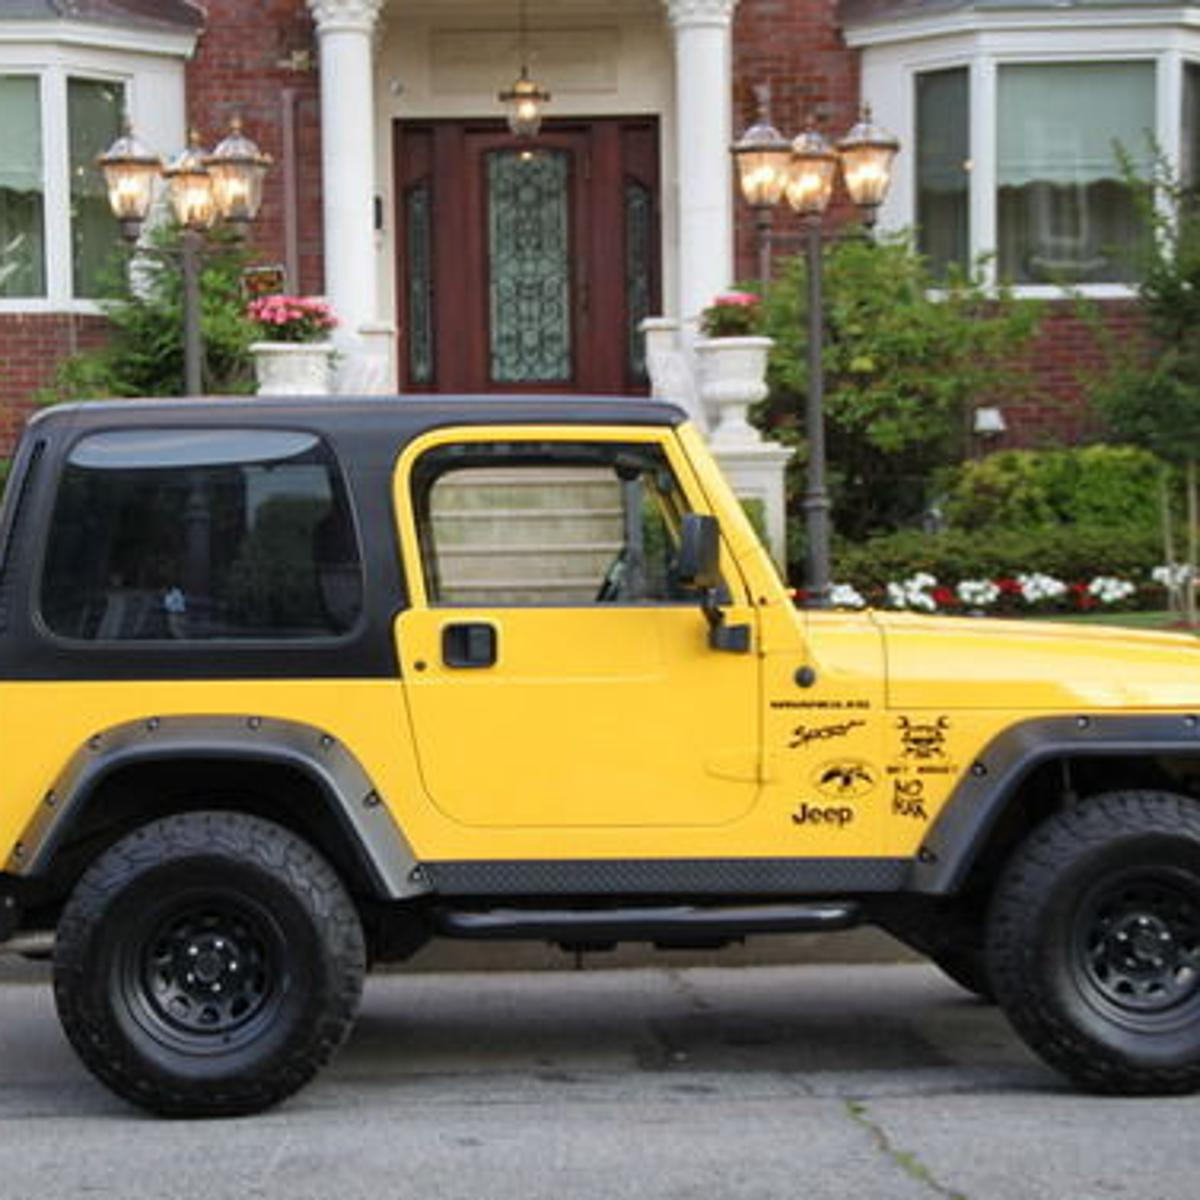 I Wanted That Yellow Jeep On Craigslist But It Was A Scam Law And Order Stltoday Com